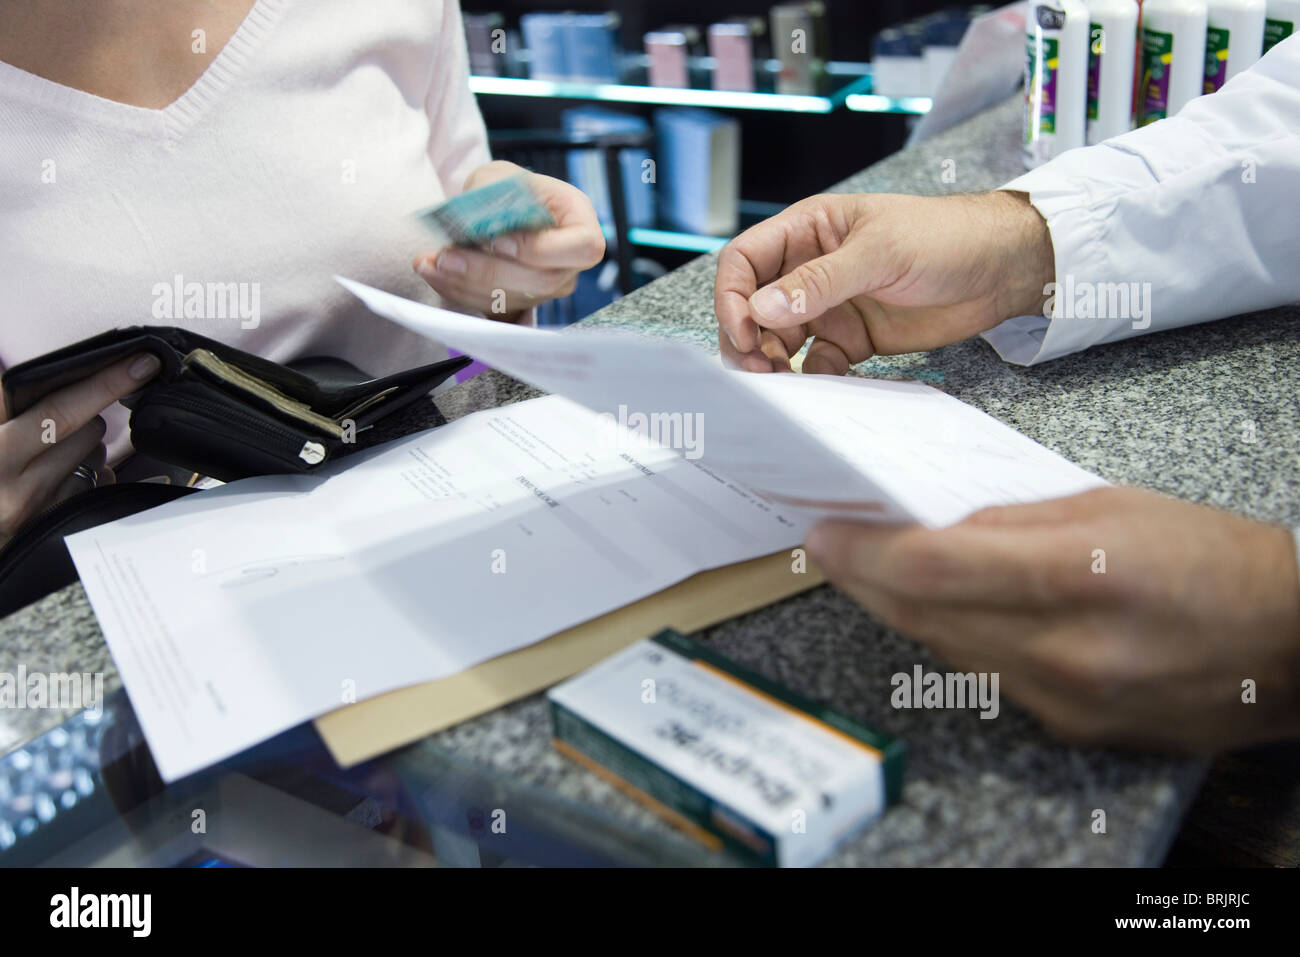 Customer paying for prescription, cropped - Stock Image